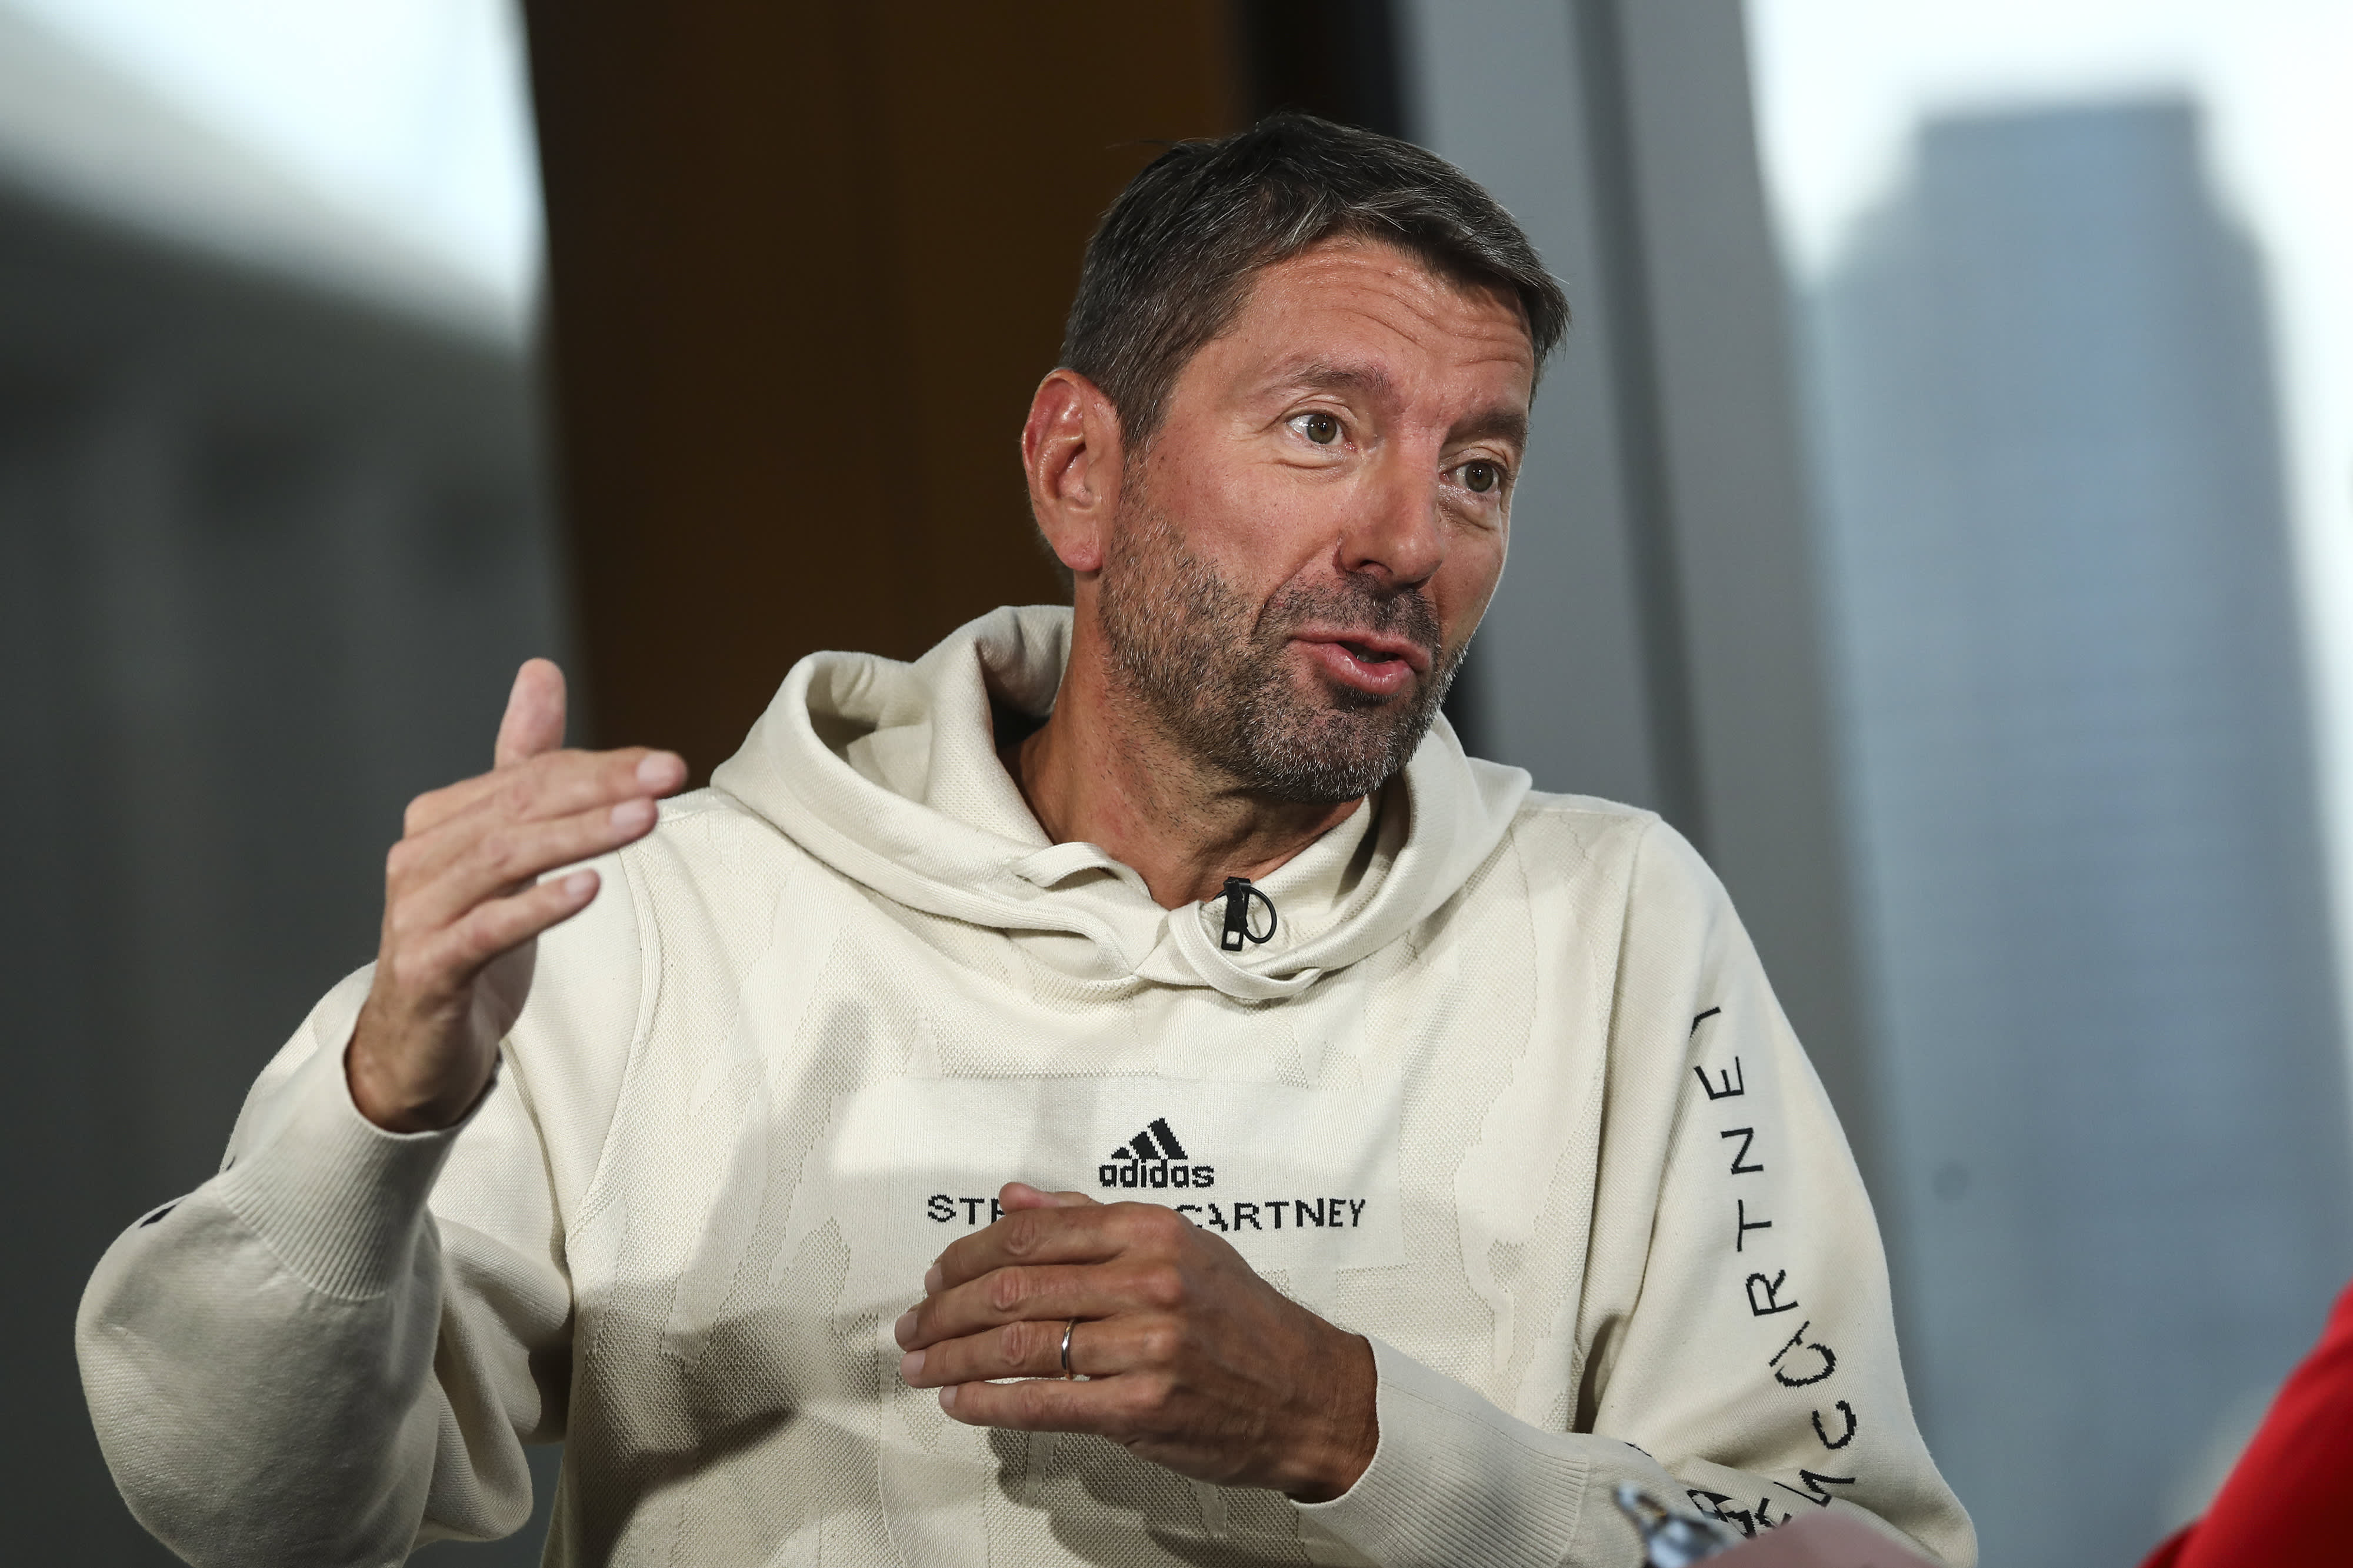 Adidas CEO Kasper Rorsted says consumers will force fashion industry to be more sustainable